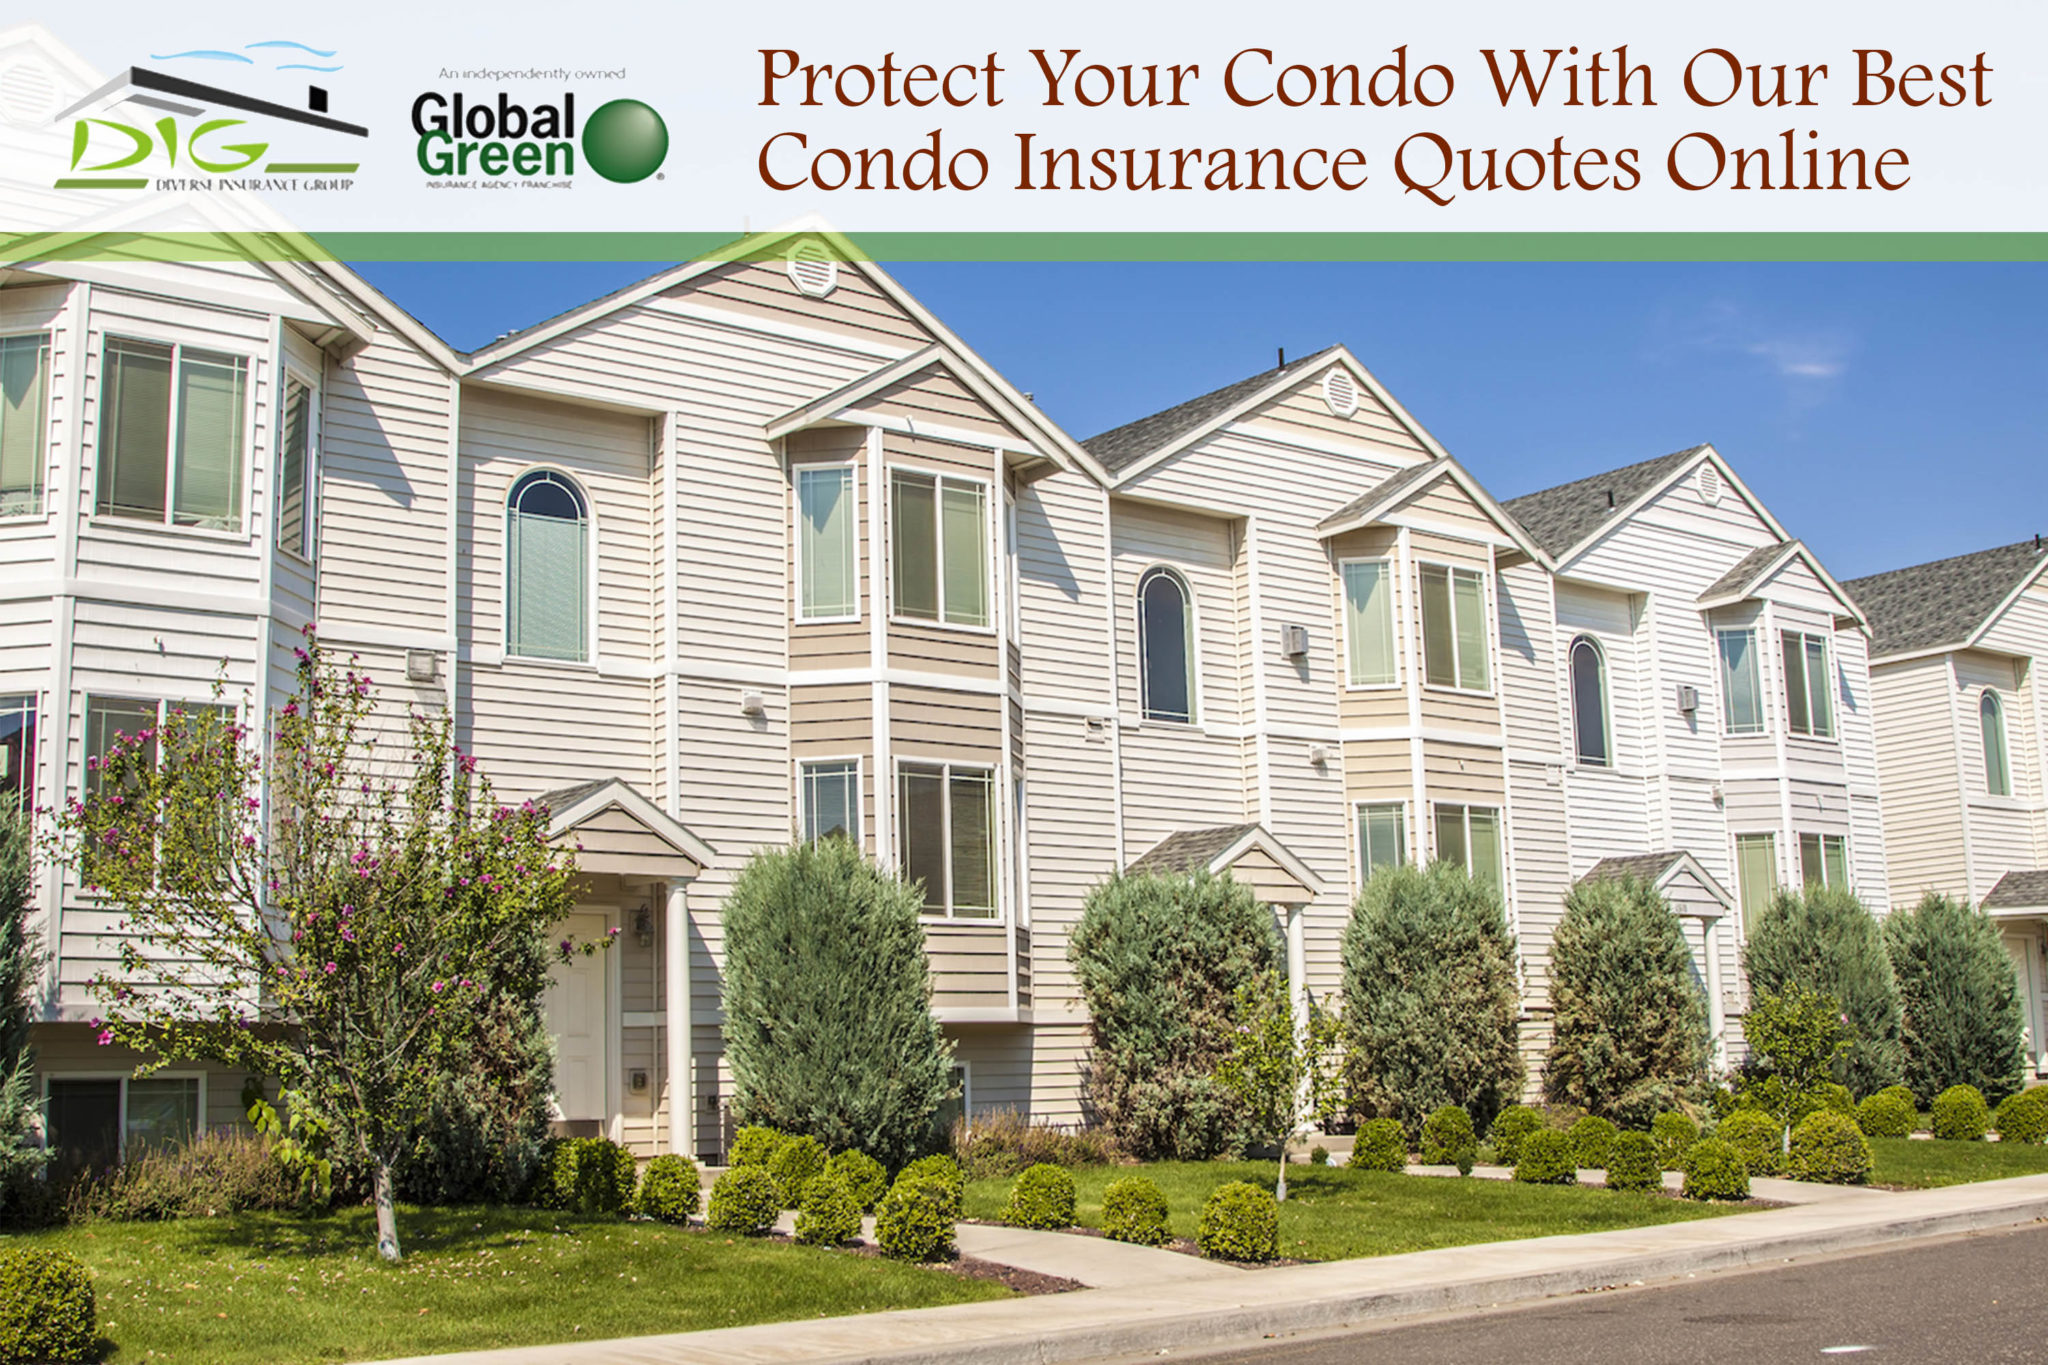 protect your condo with our best condo insurance quotes online